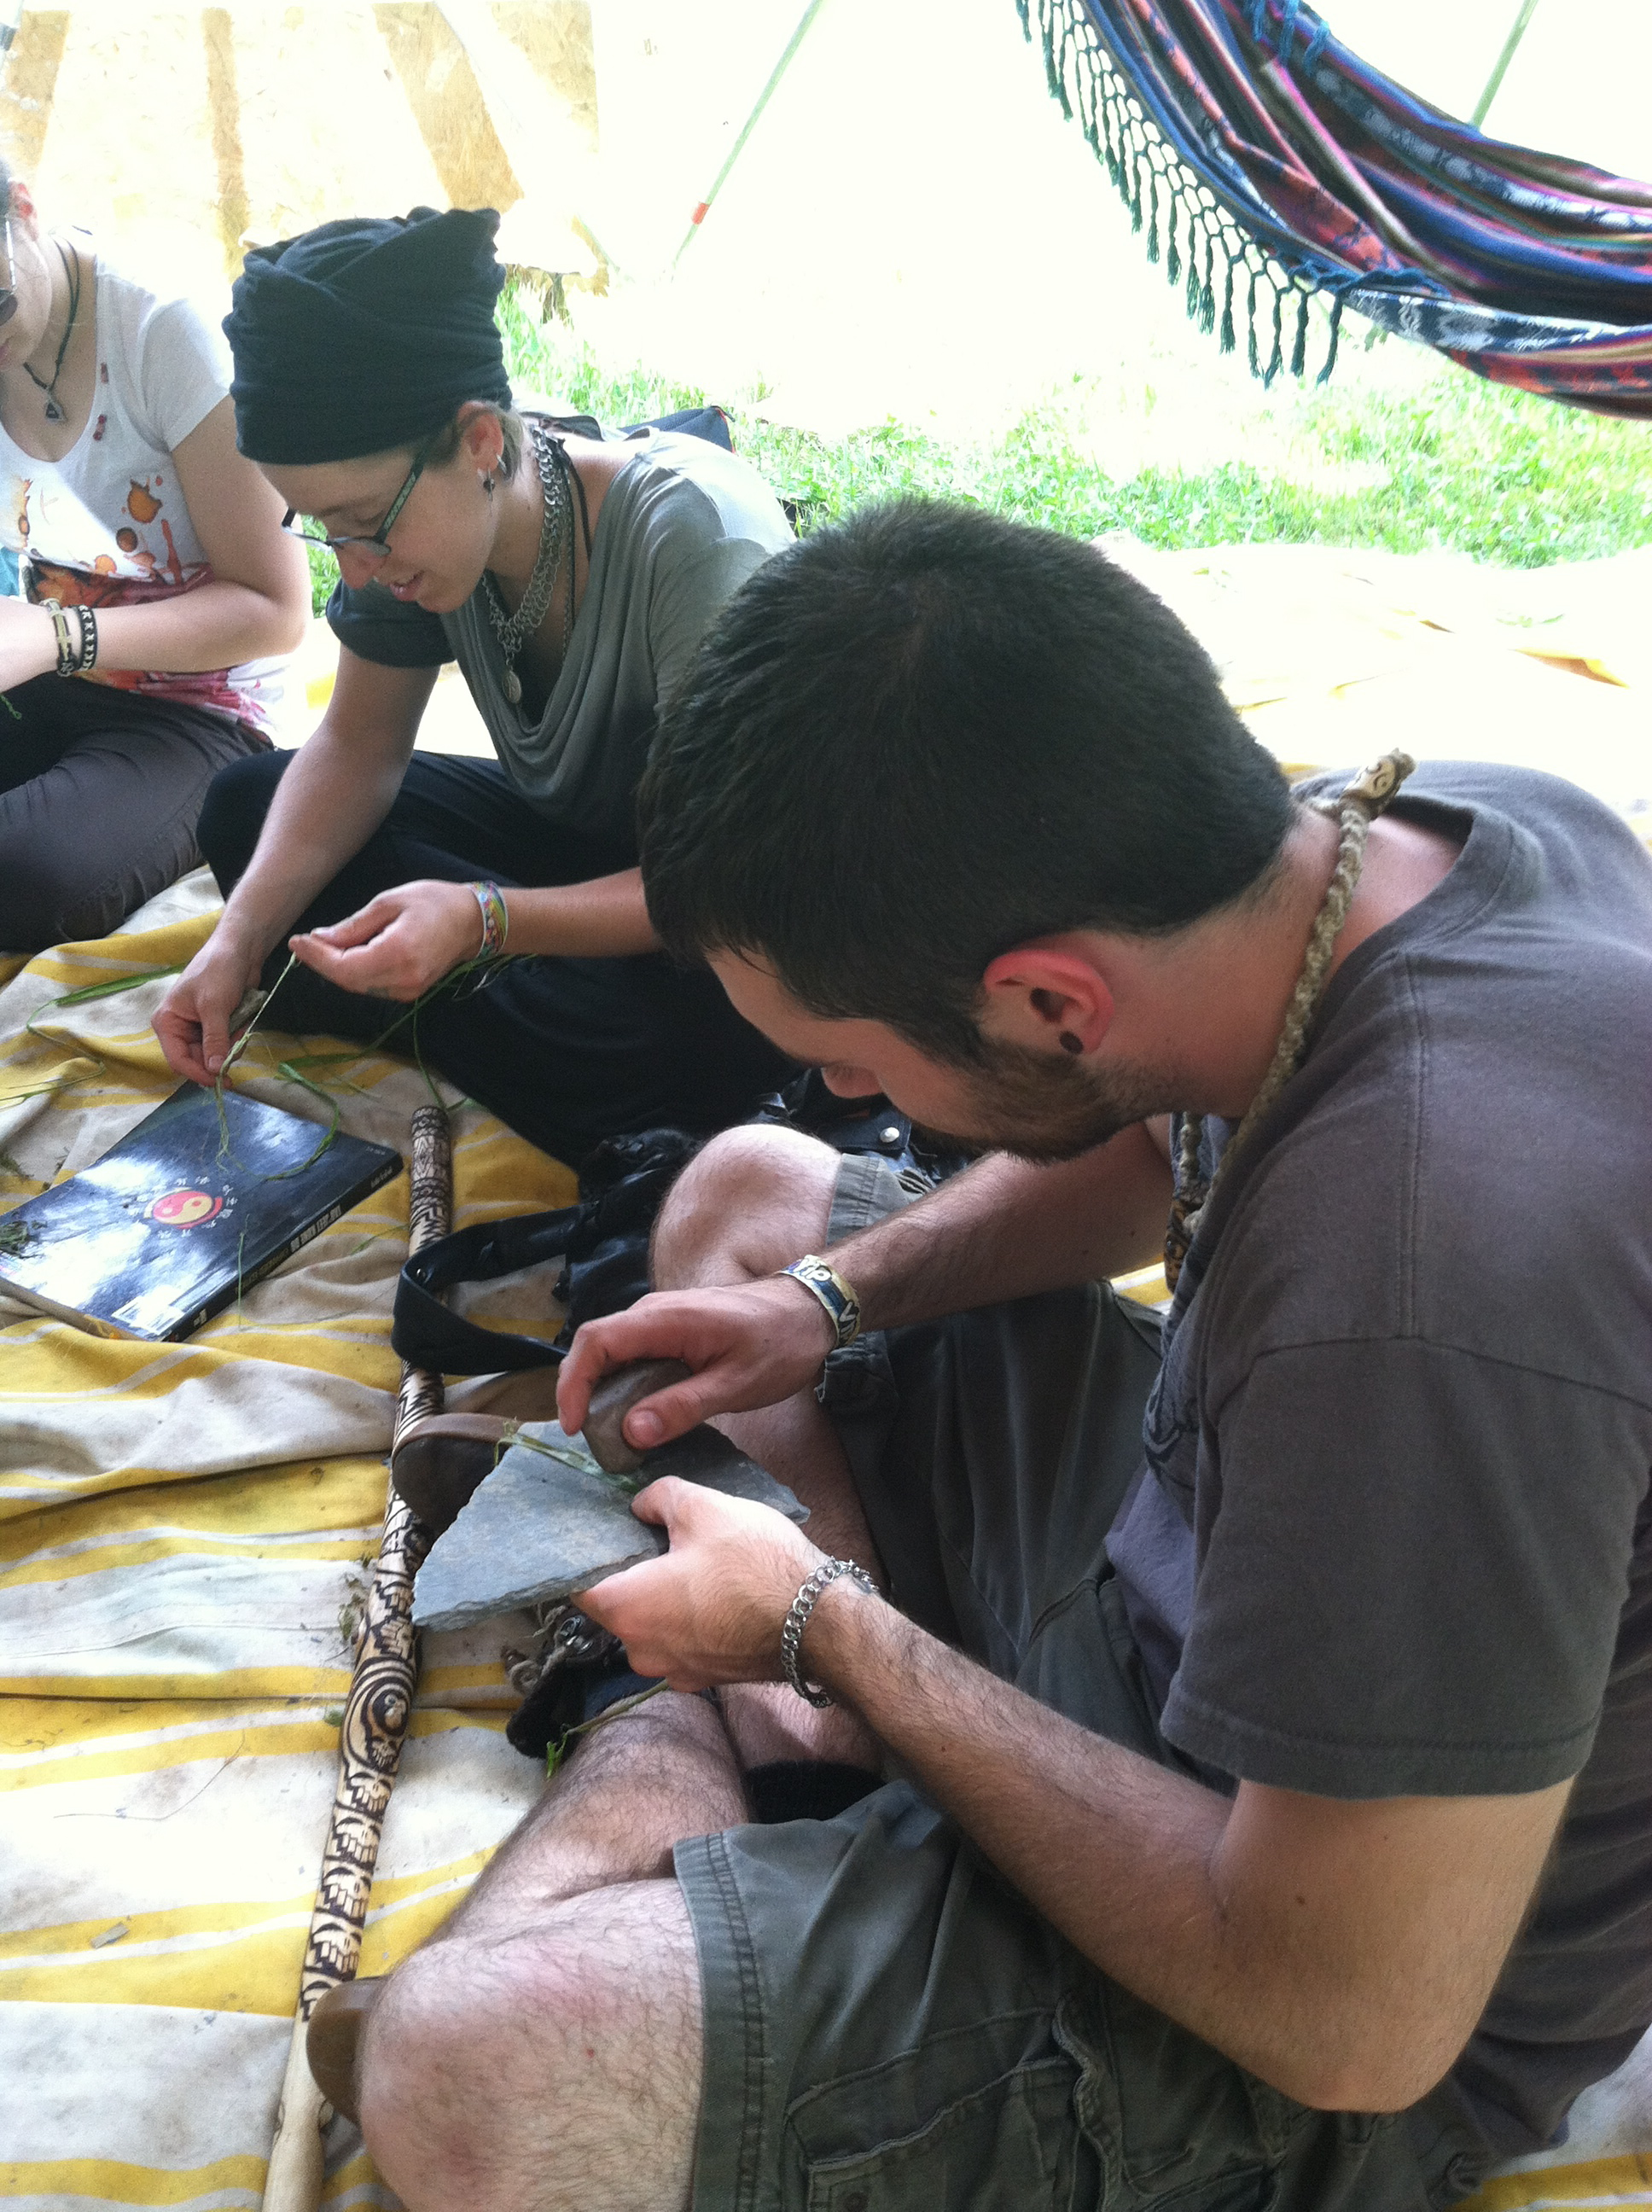 Ropemaking from Found Fibers in Nature_Ameribeat14_2